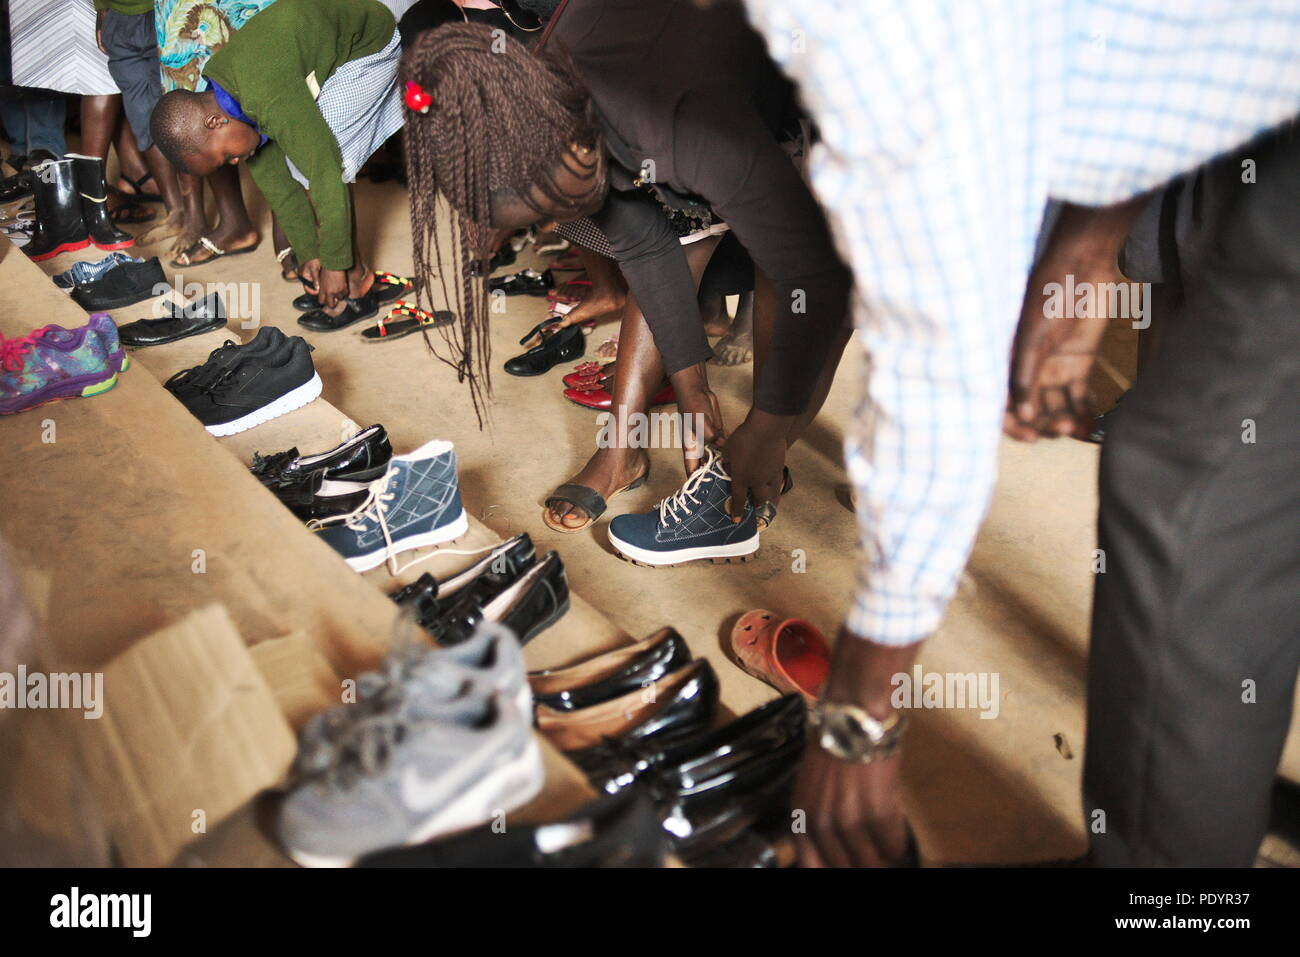 Young Ugandan/African schoolchildren try on used shoes given to the school as a gift from the UK - Stock Image